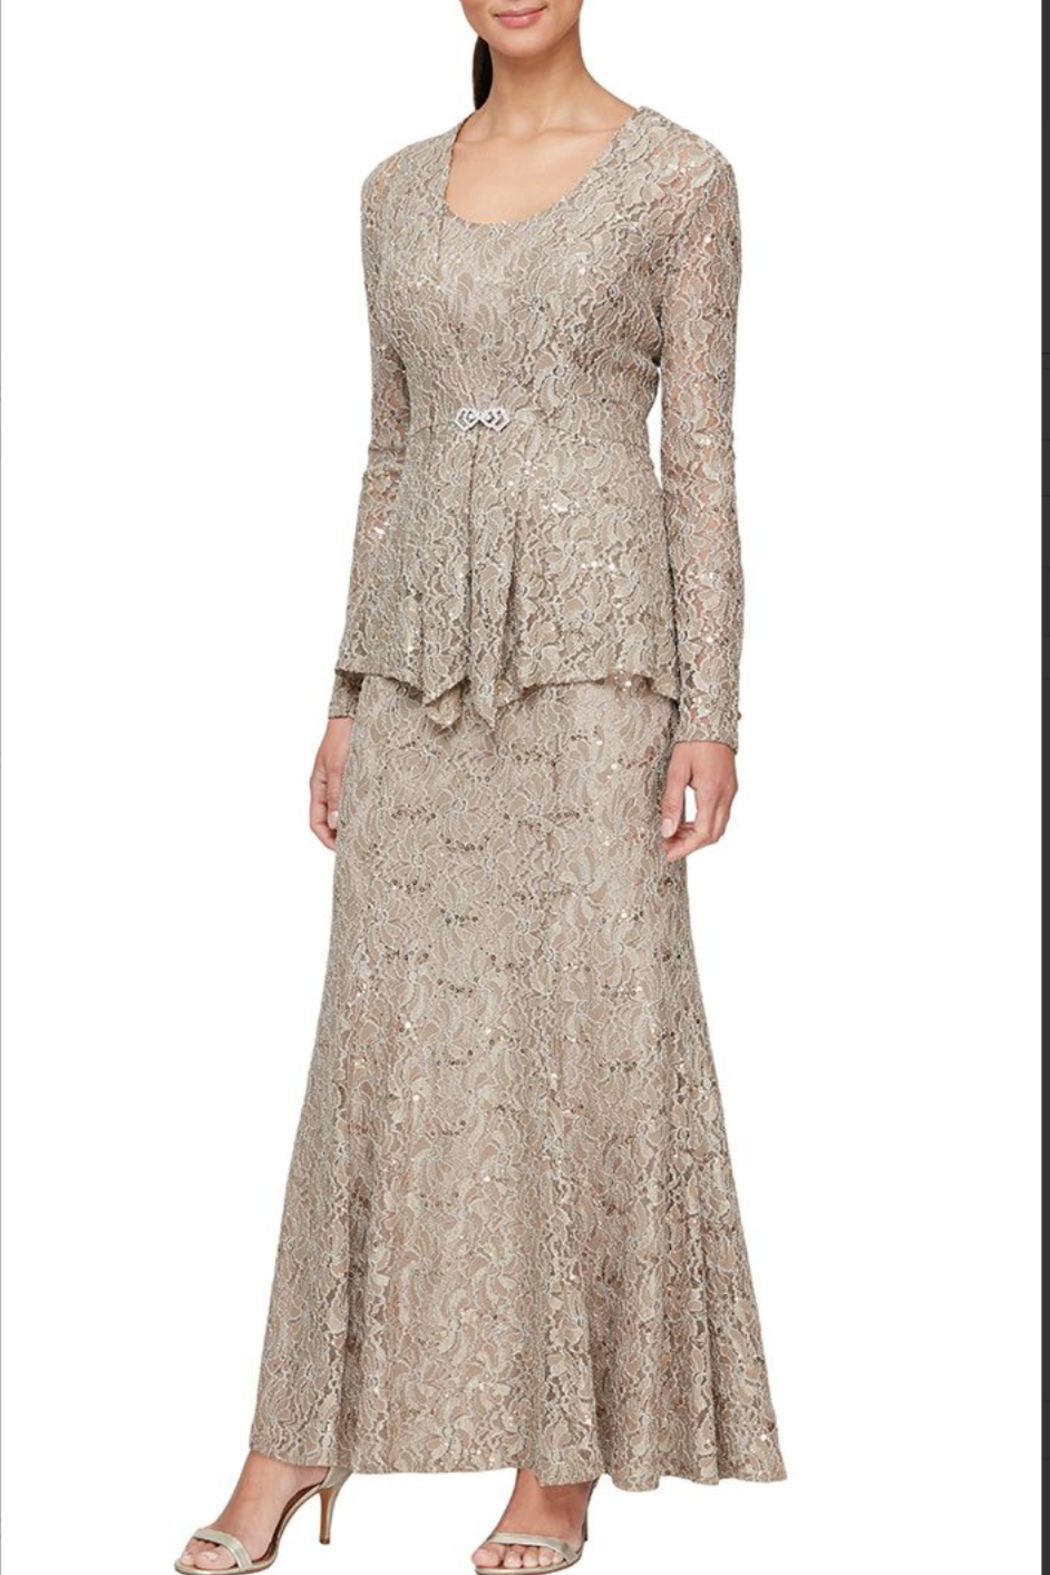 Alex Evenings 81122452 - LONG FIT AND FLARE LACE JACKET DRESS - Main Image